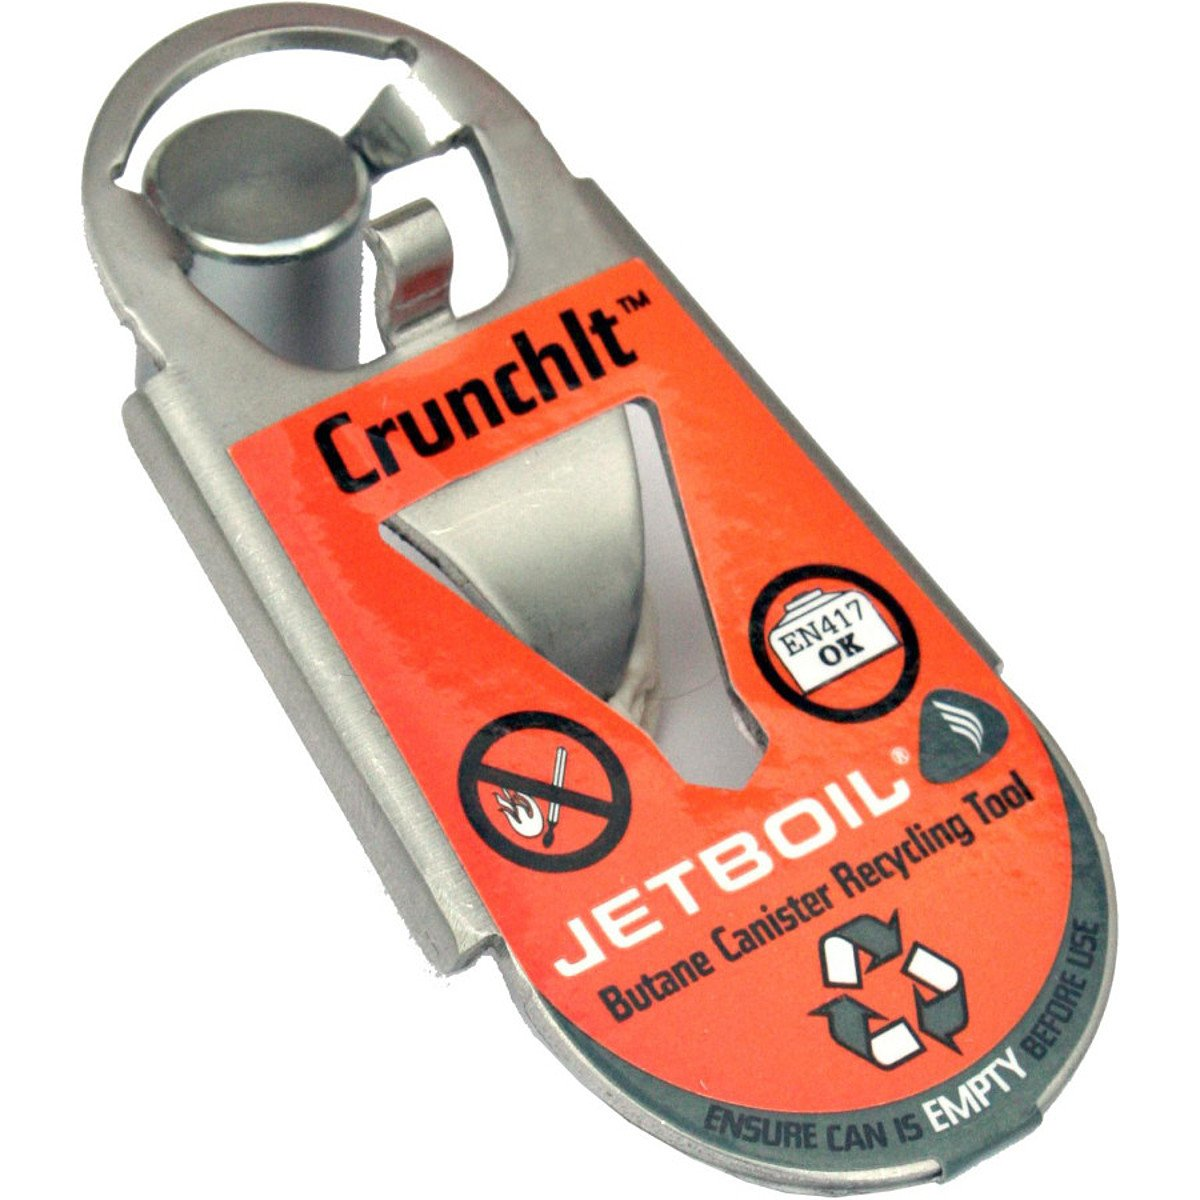 Jetboil Crunchit Fuel Canisterリサイクルツール B004N5SJ92  1色 One Size